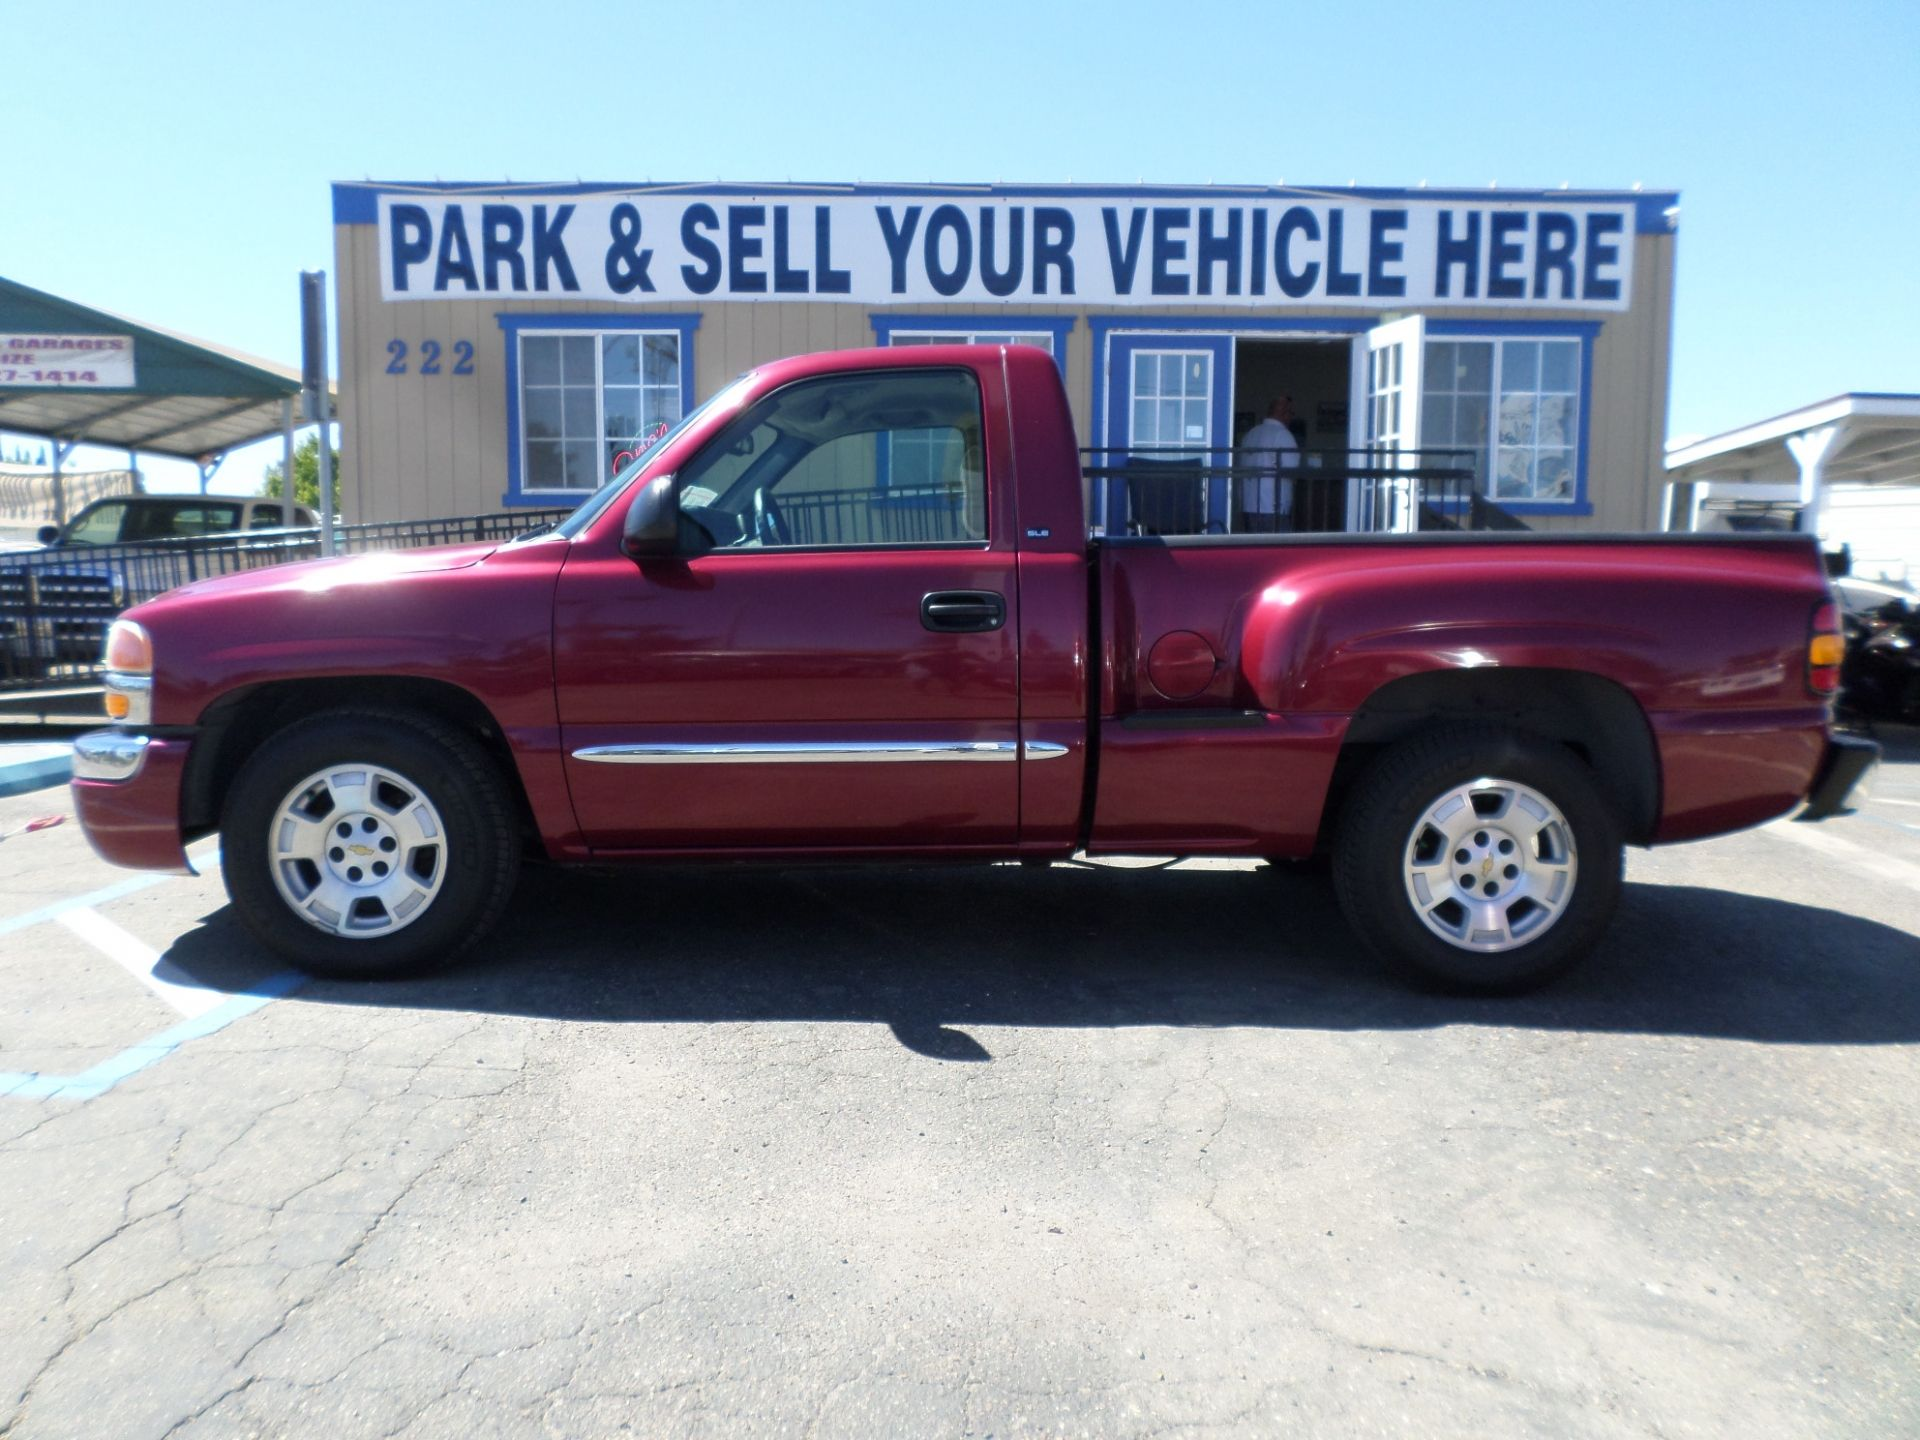 2004 Gmc Sierra 1500 Sport Body Regular Cab Gmc Sierra 1500